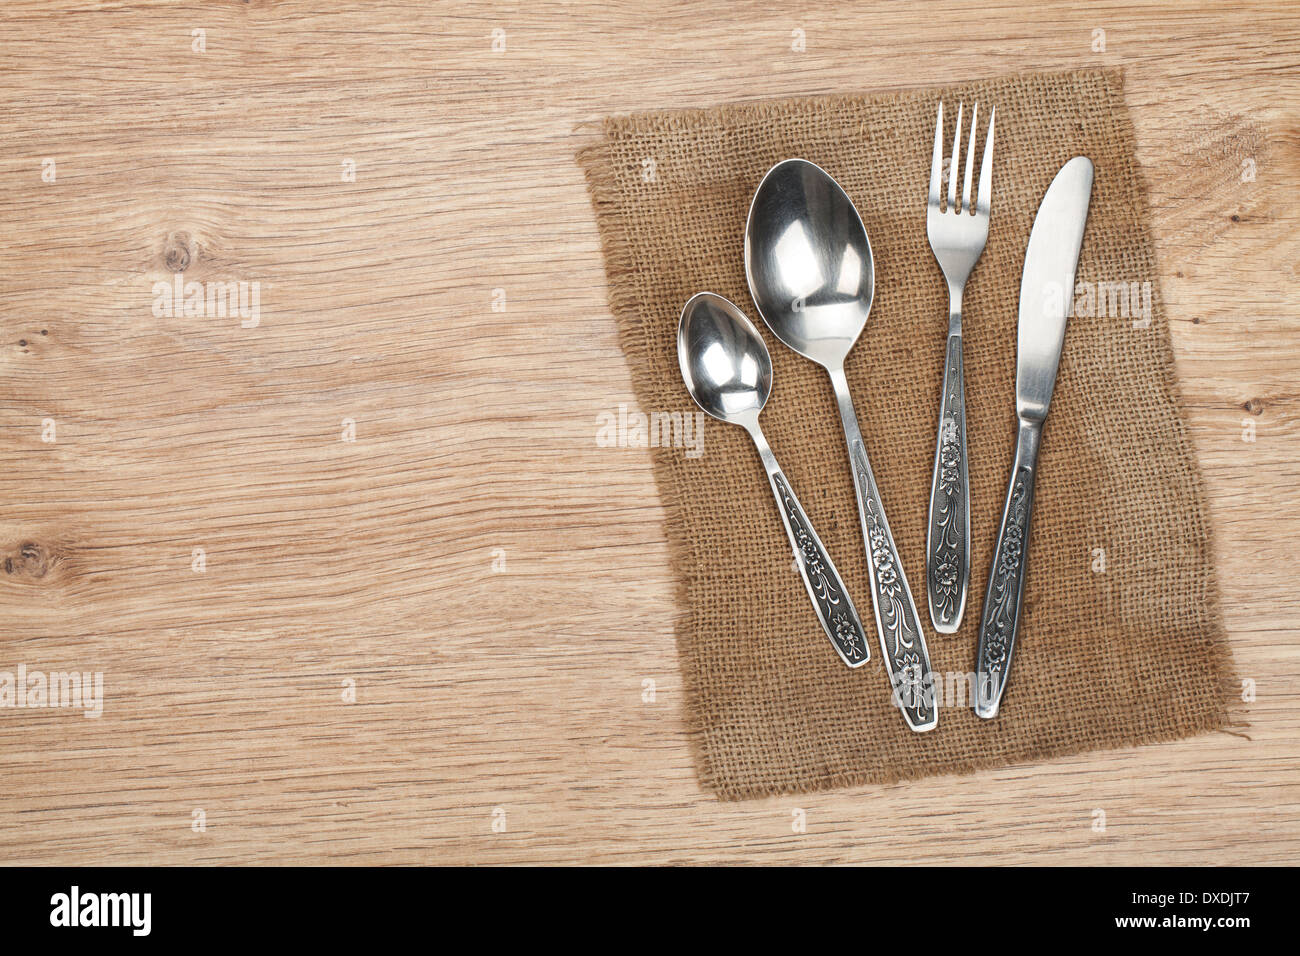 Silverware or flatware set of fork, spoon and knife on wooden table ...